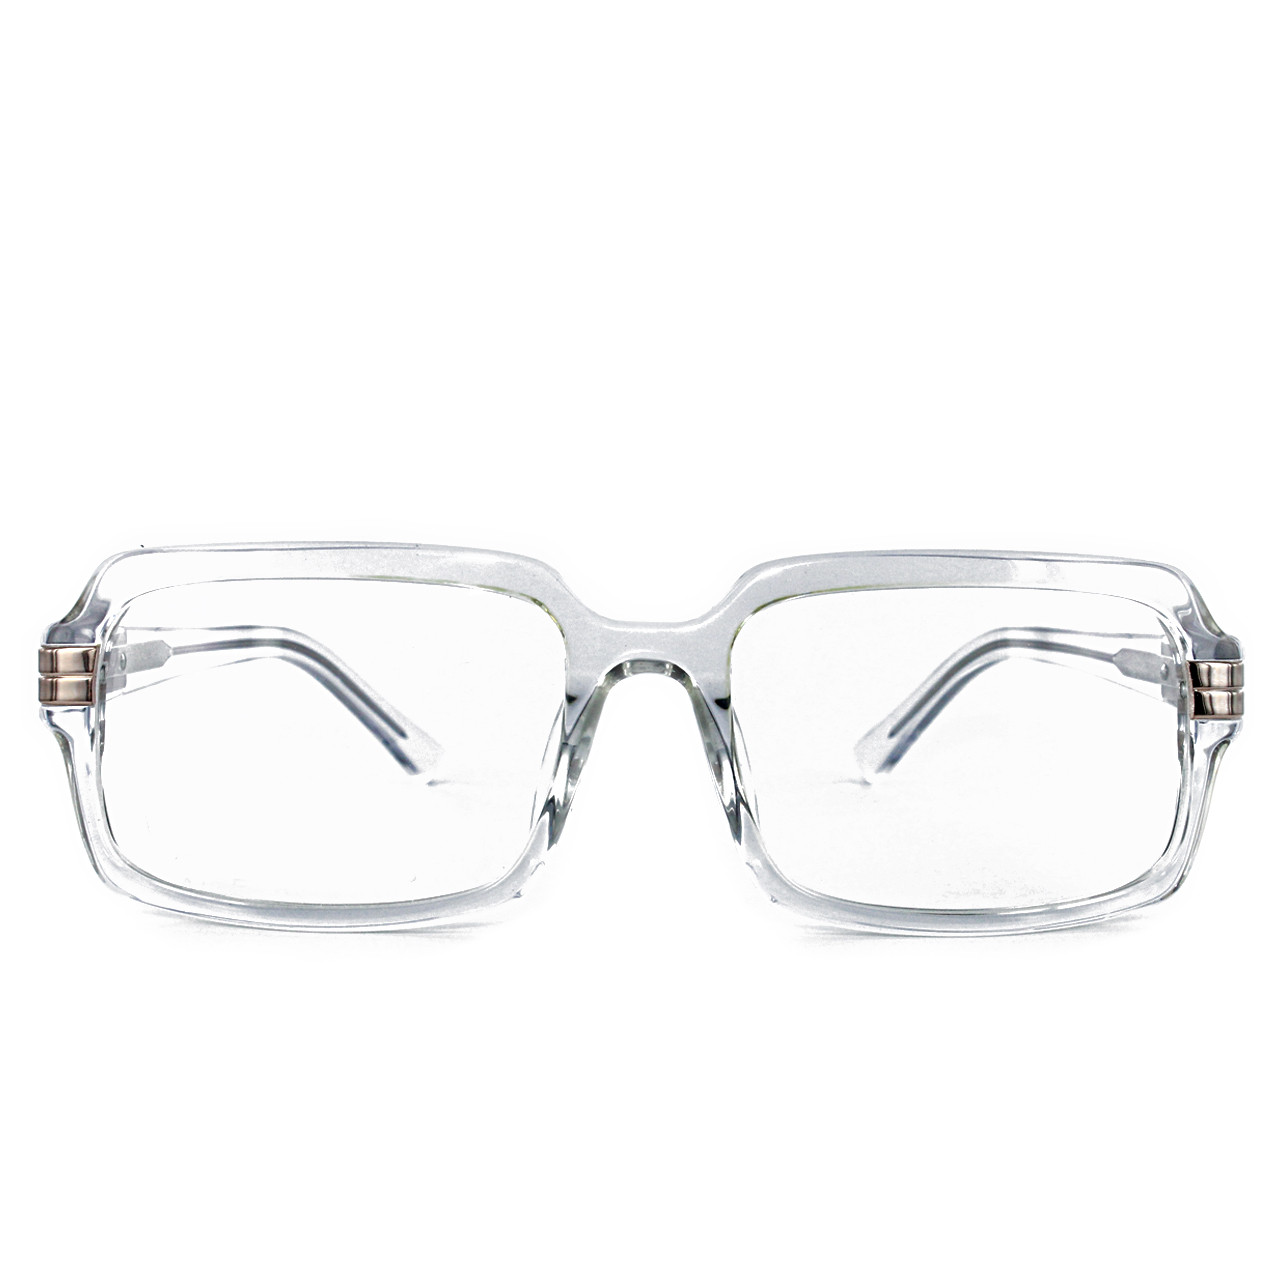 GEEK Eyewear GEEK ROUQ 8 Crystal Clear